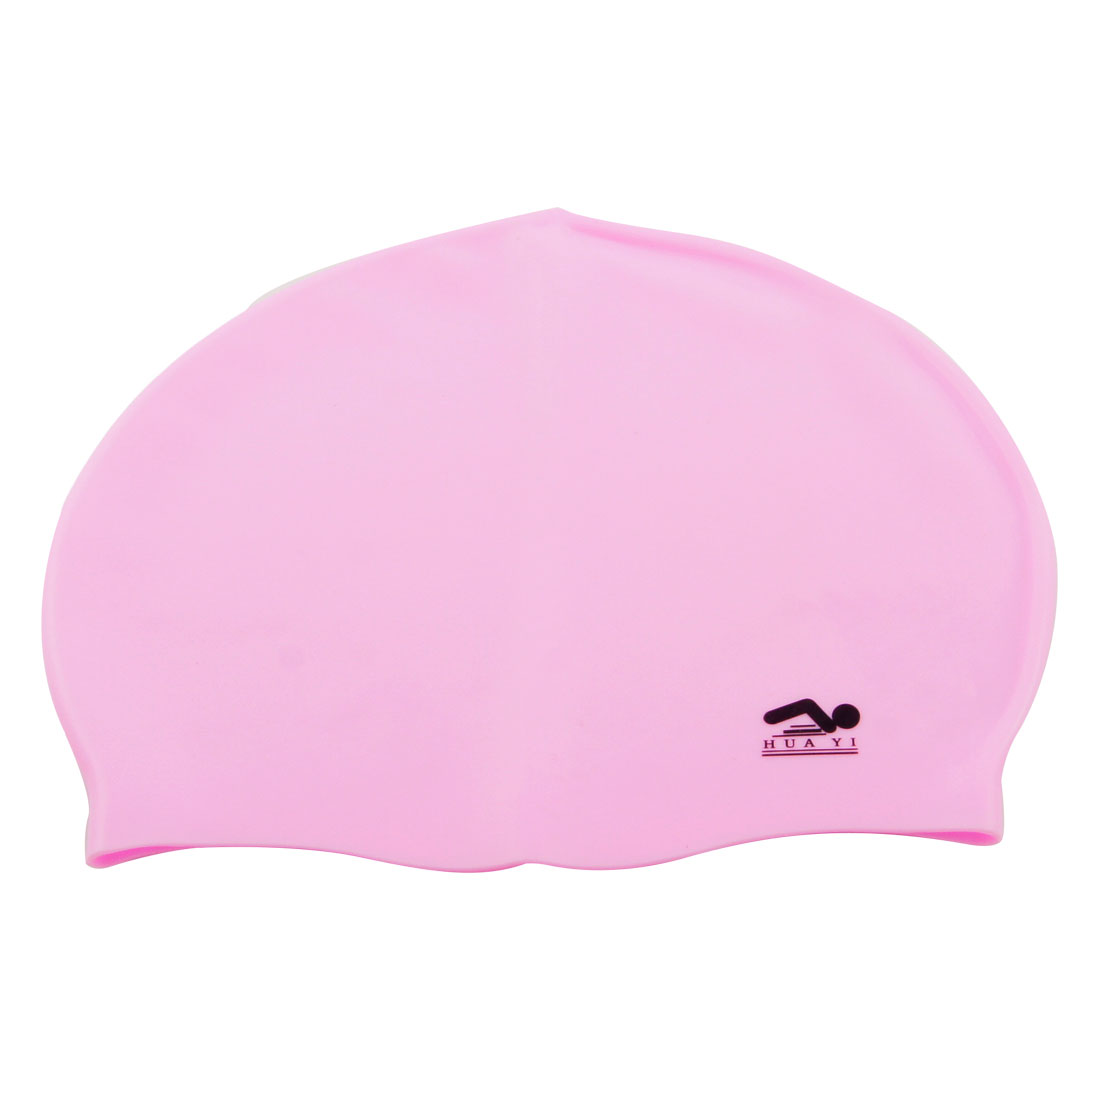 Adult Soft Flexible Silicone Nonslip Sports Pink Swimming Cap